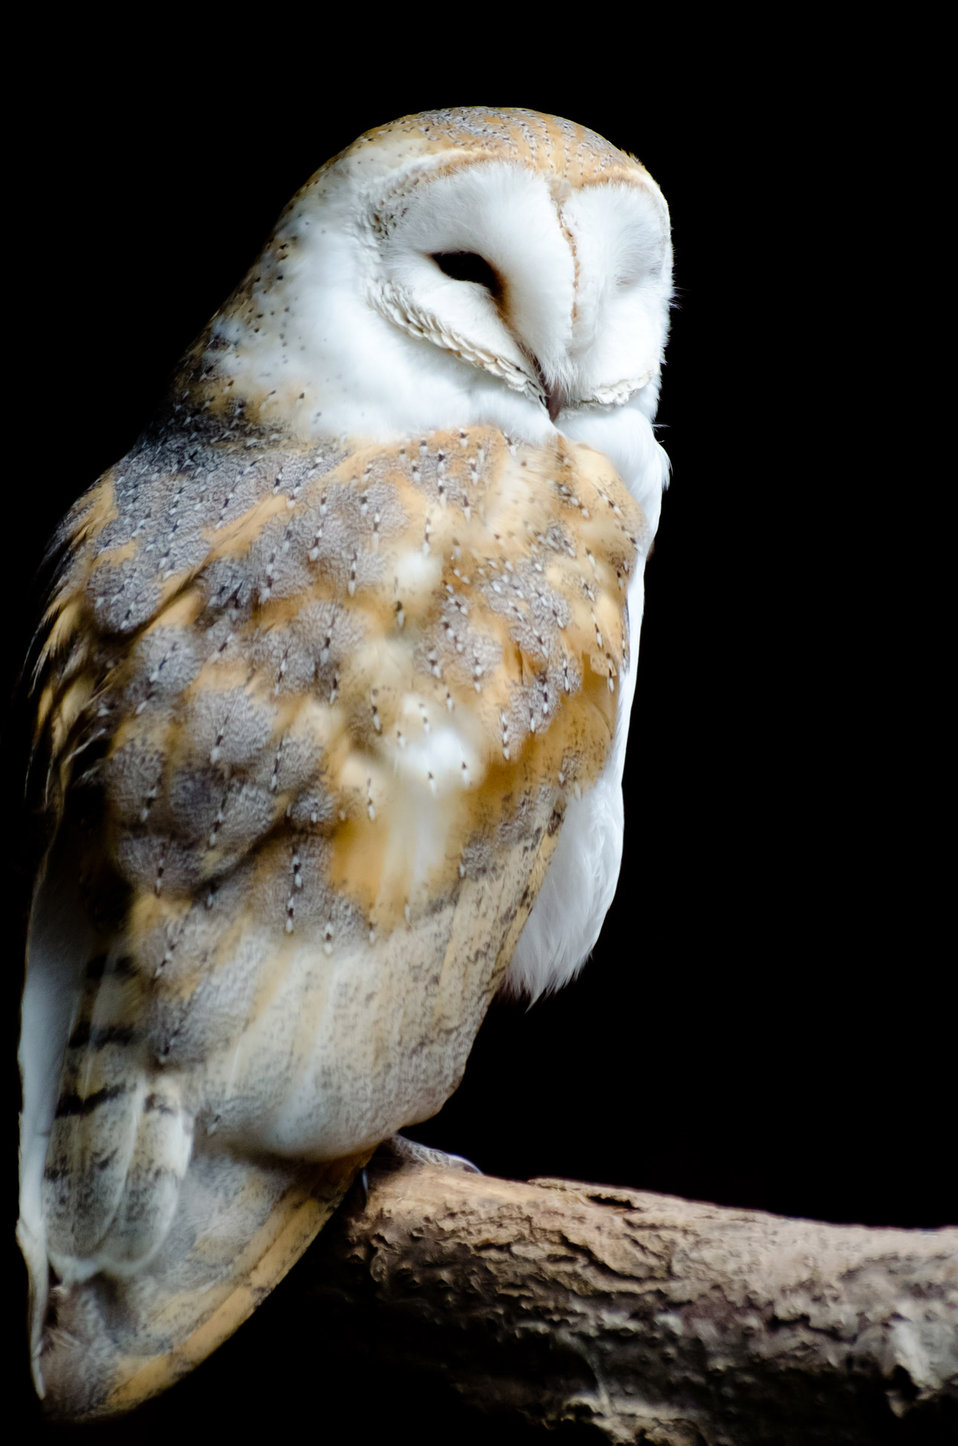 Barn owl on the black background